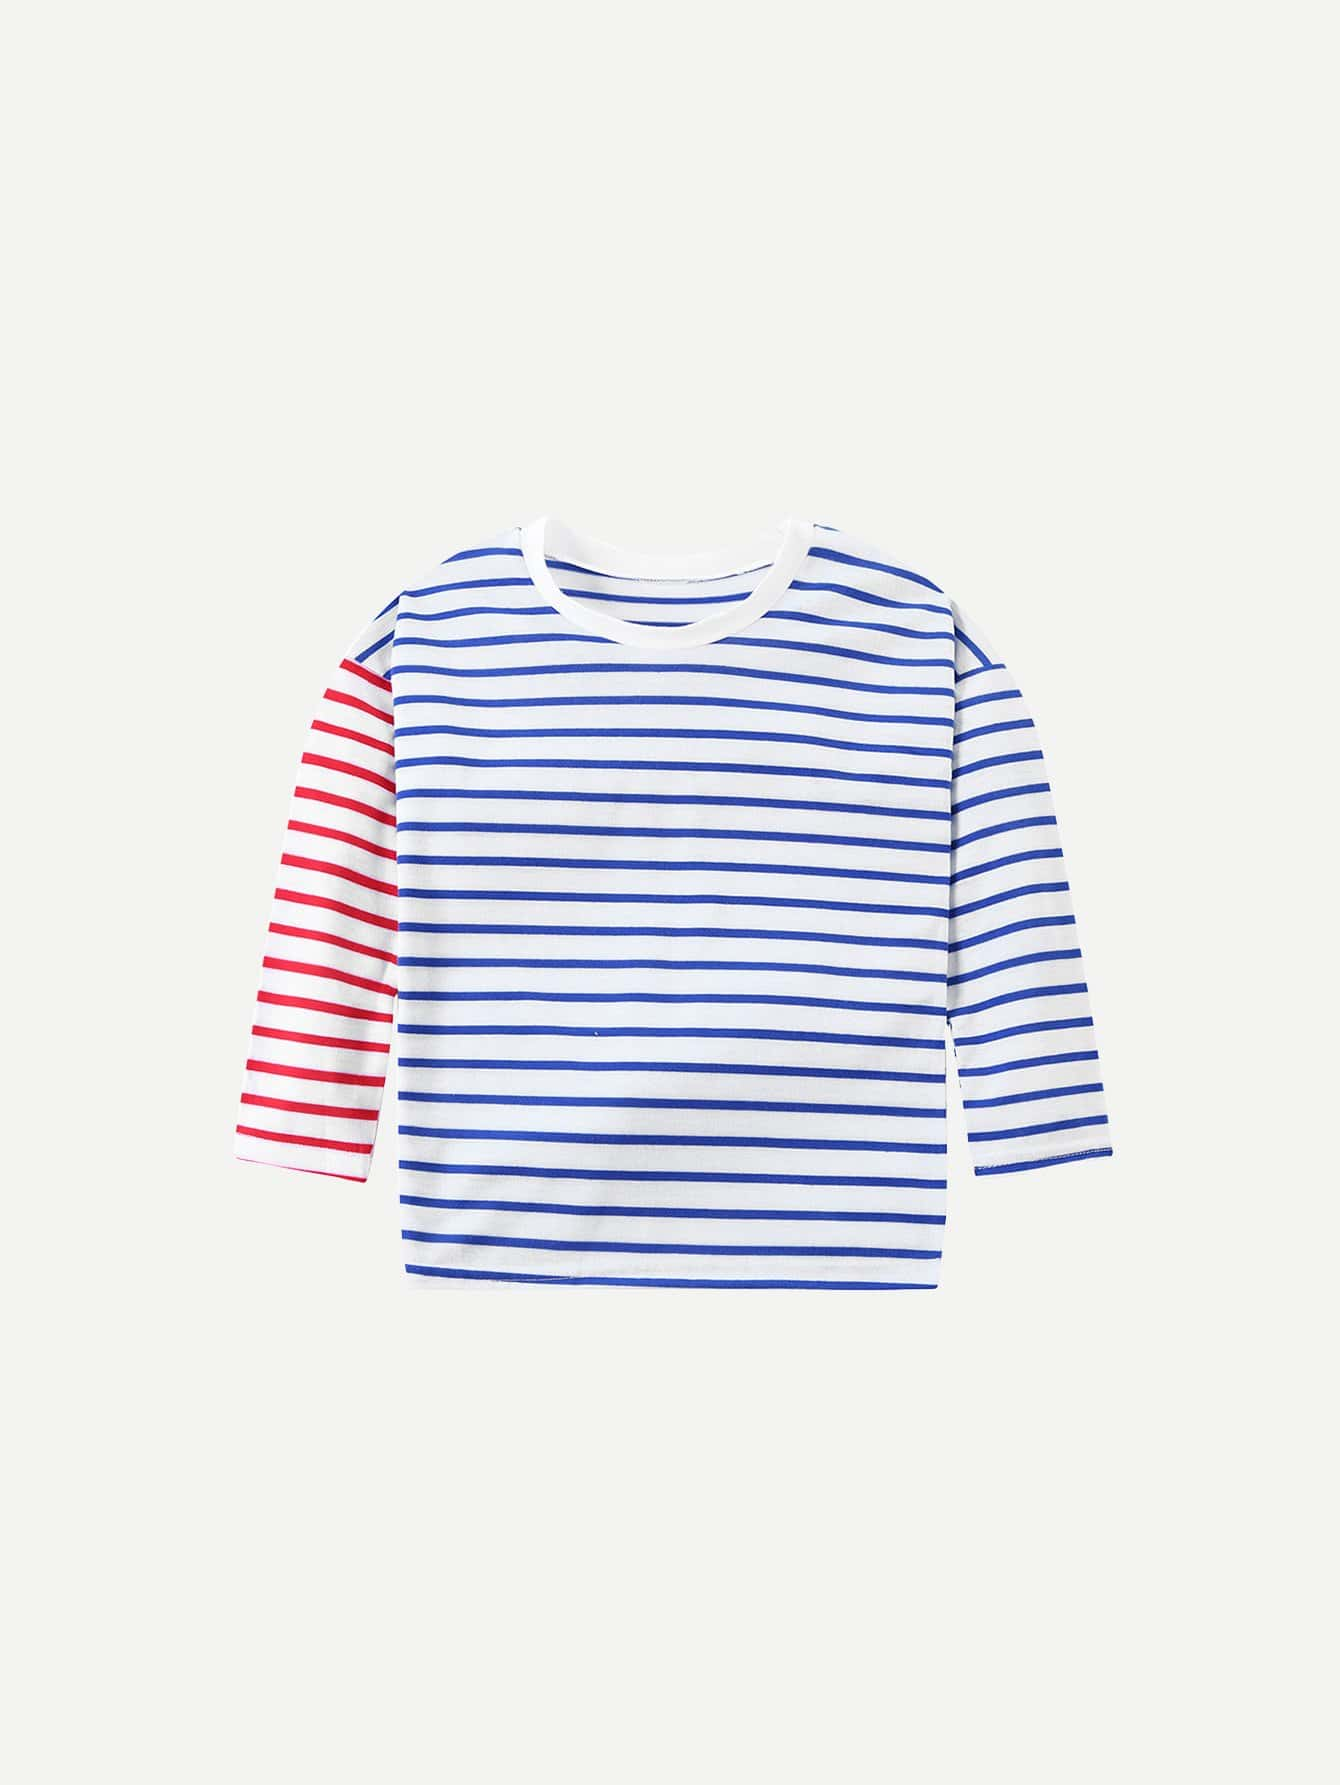 Kids Contrast Striped Tee contrast striped trim camo print tee